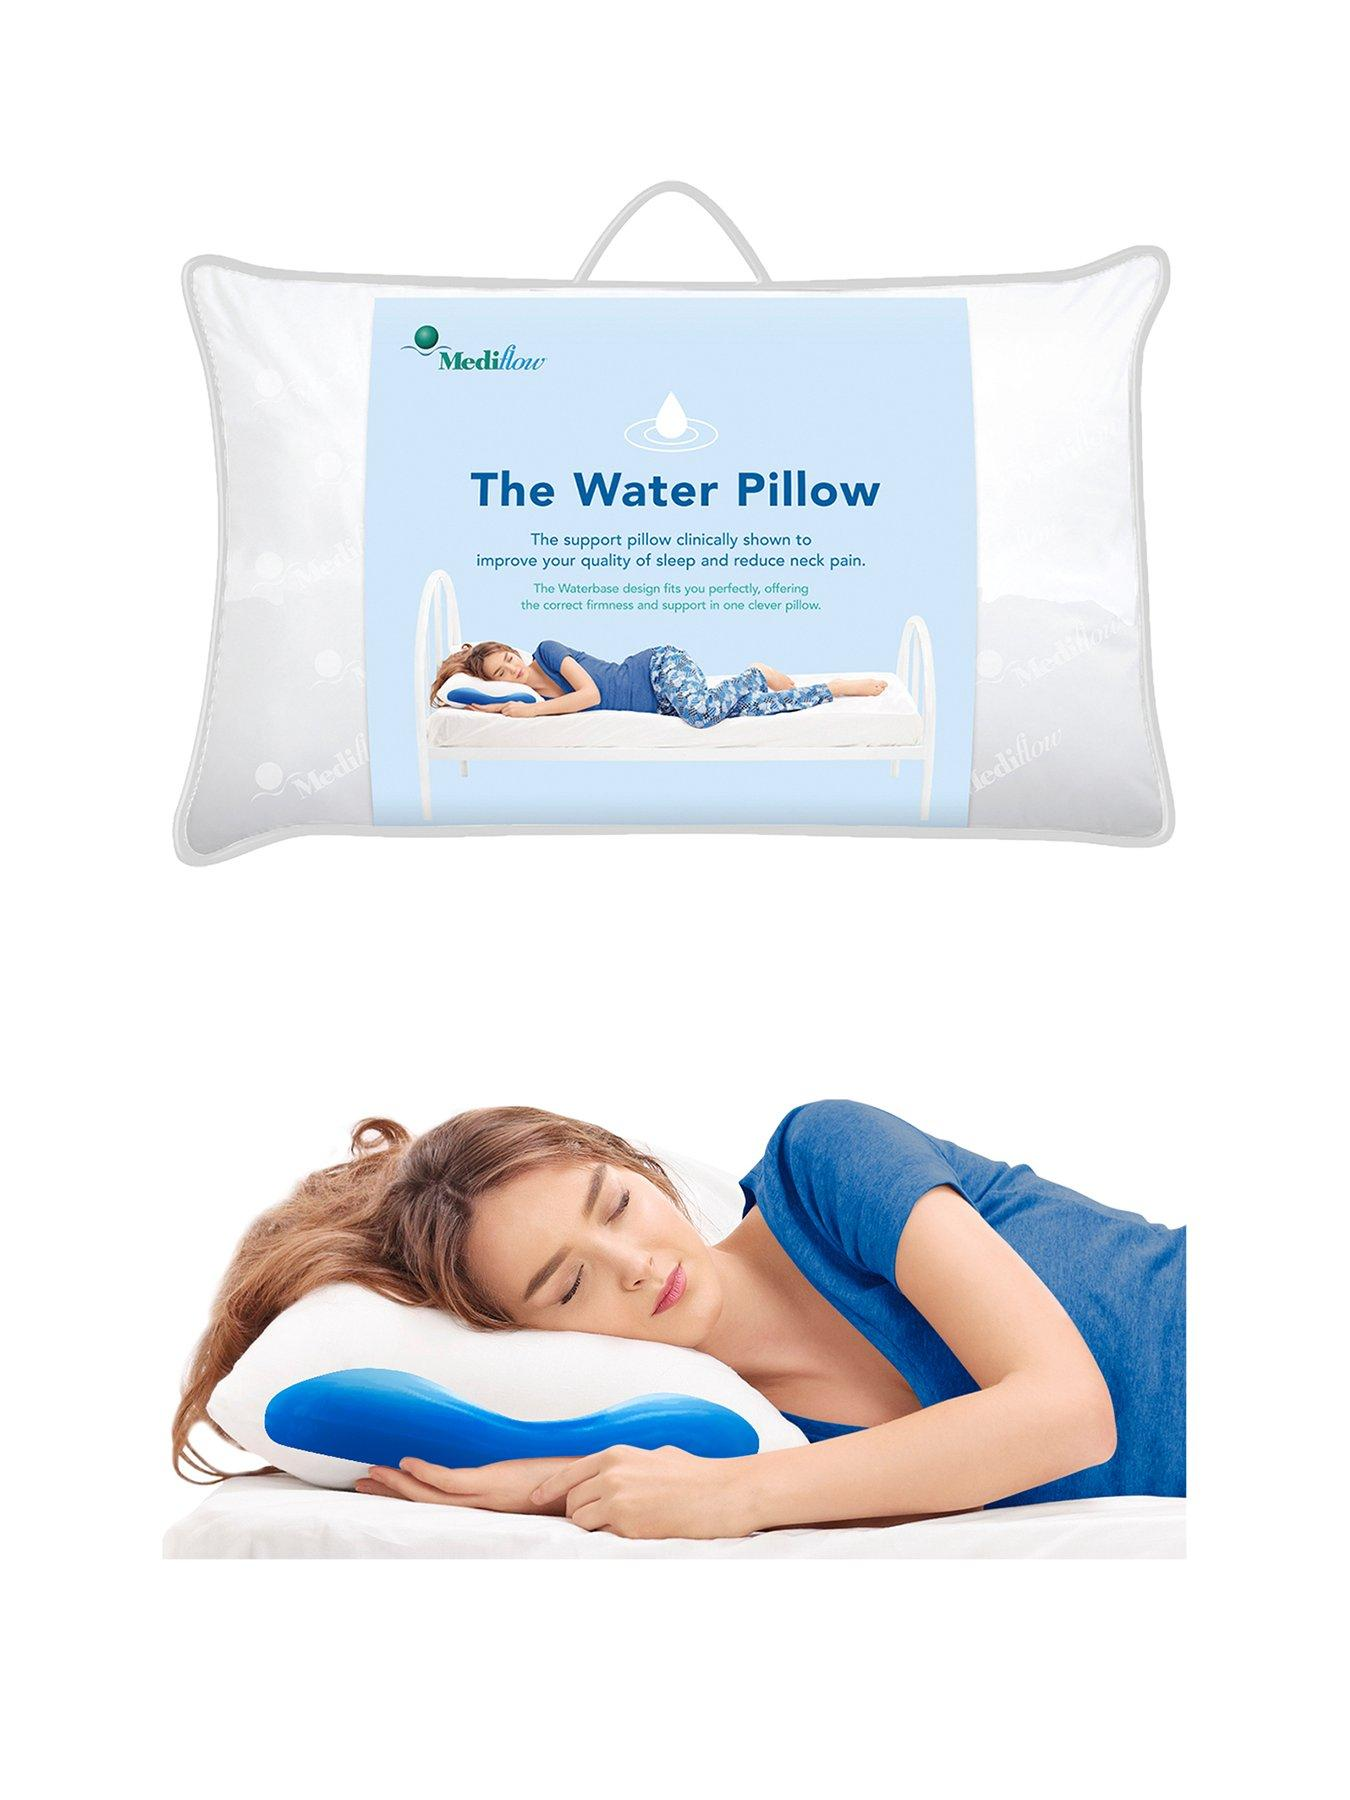 the water pillow mediflow